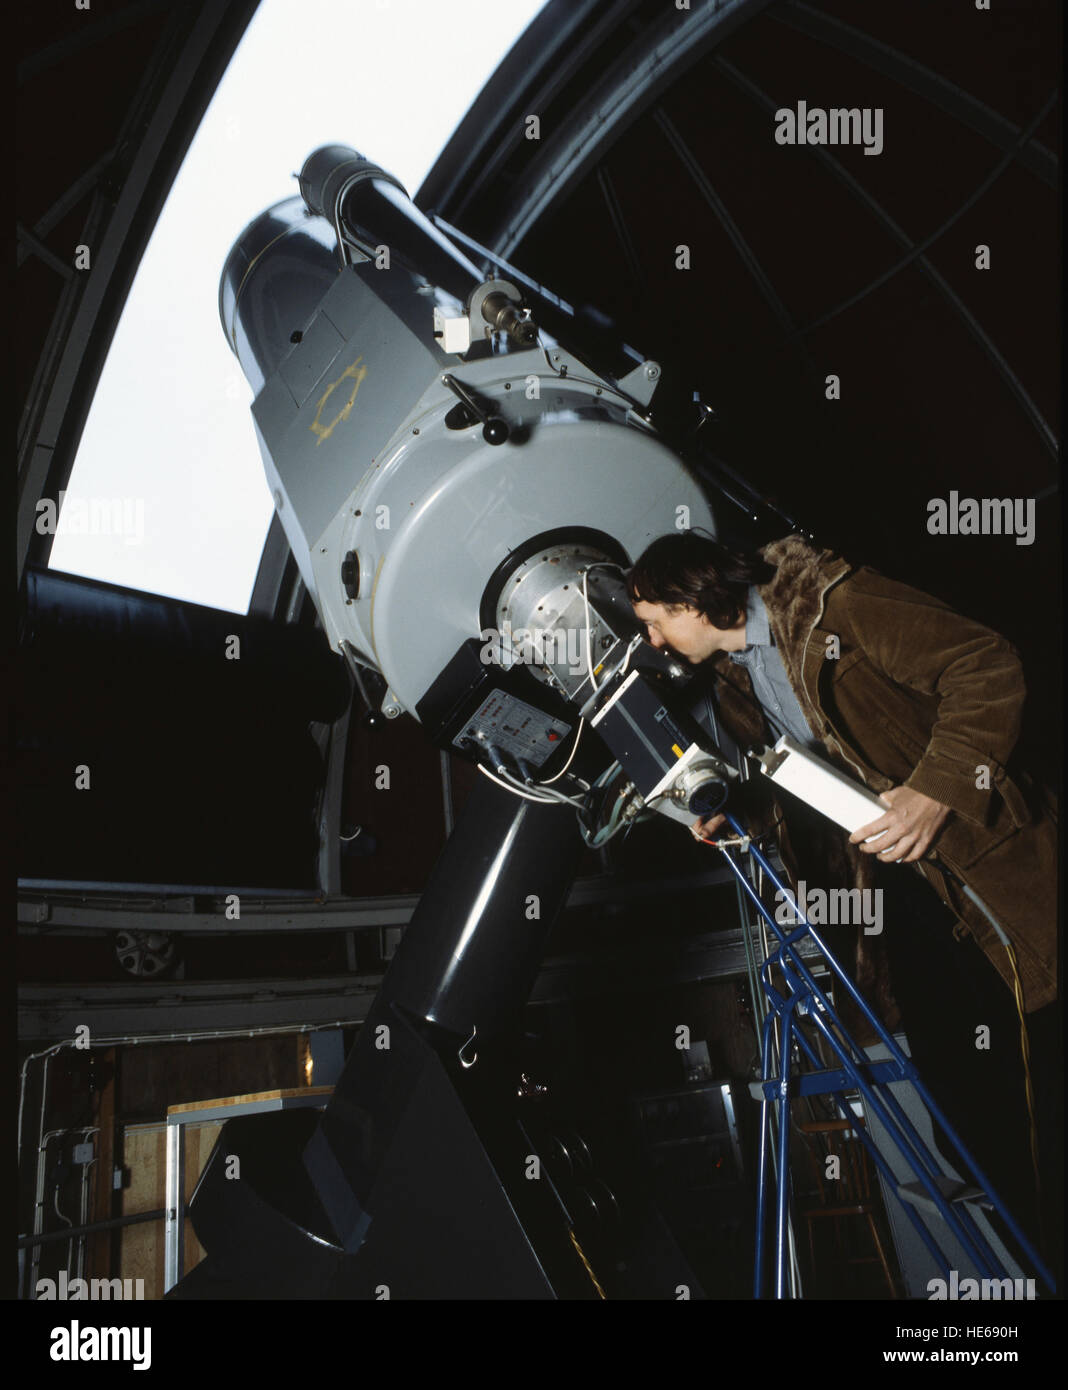 TELESCOPE in a observatory 2000 - Stock Image